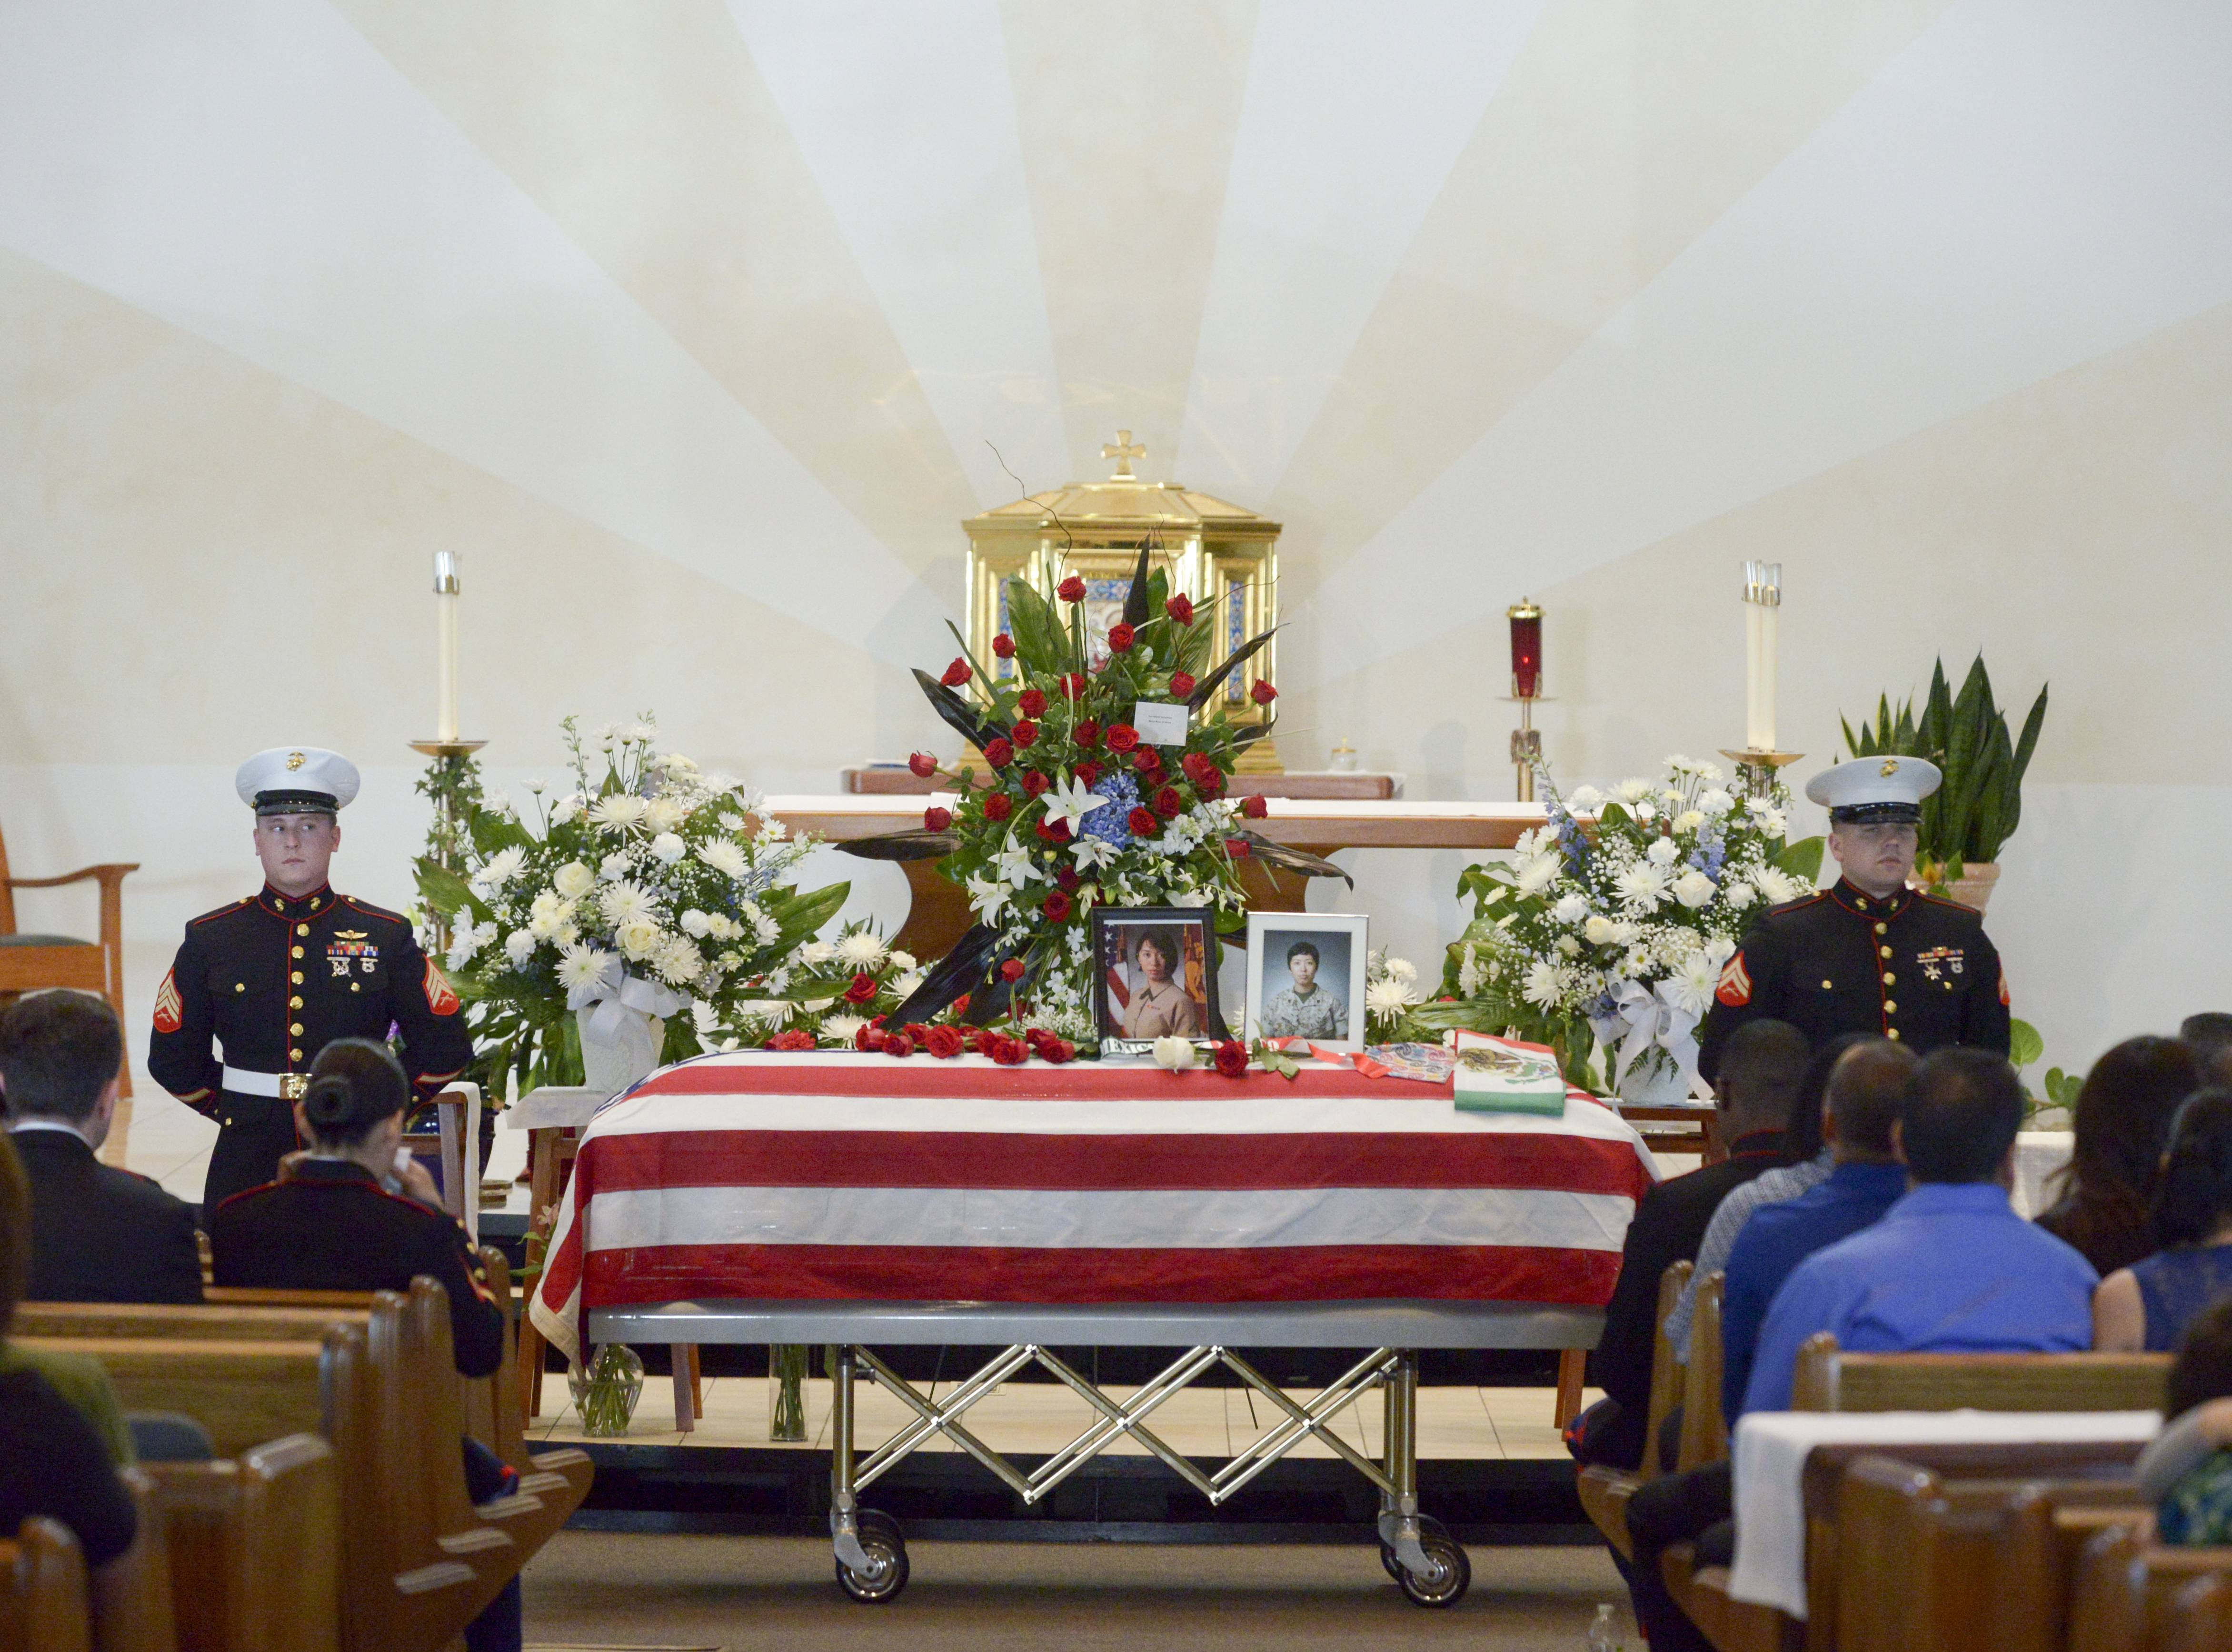 A Marine honor guard flanks the casket of Marine Cpl. Sara A. Medina during the funeral service Wednesday for her at St. Mary Immaculate Parish in Plainfield. Medina was killed in a helicopter crash while on a relief mission in Nepal.